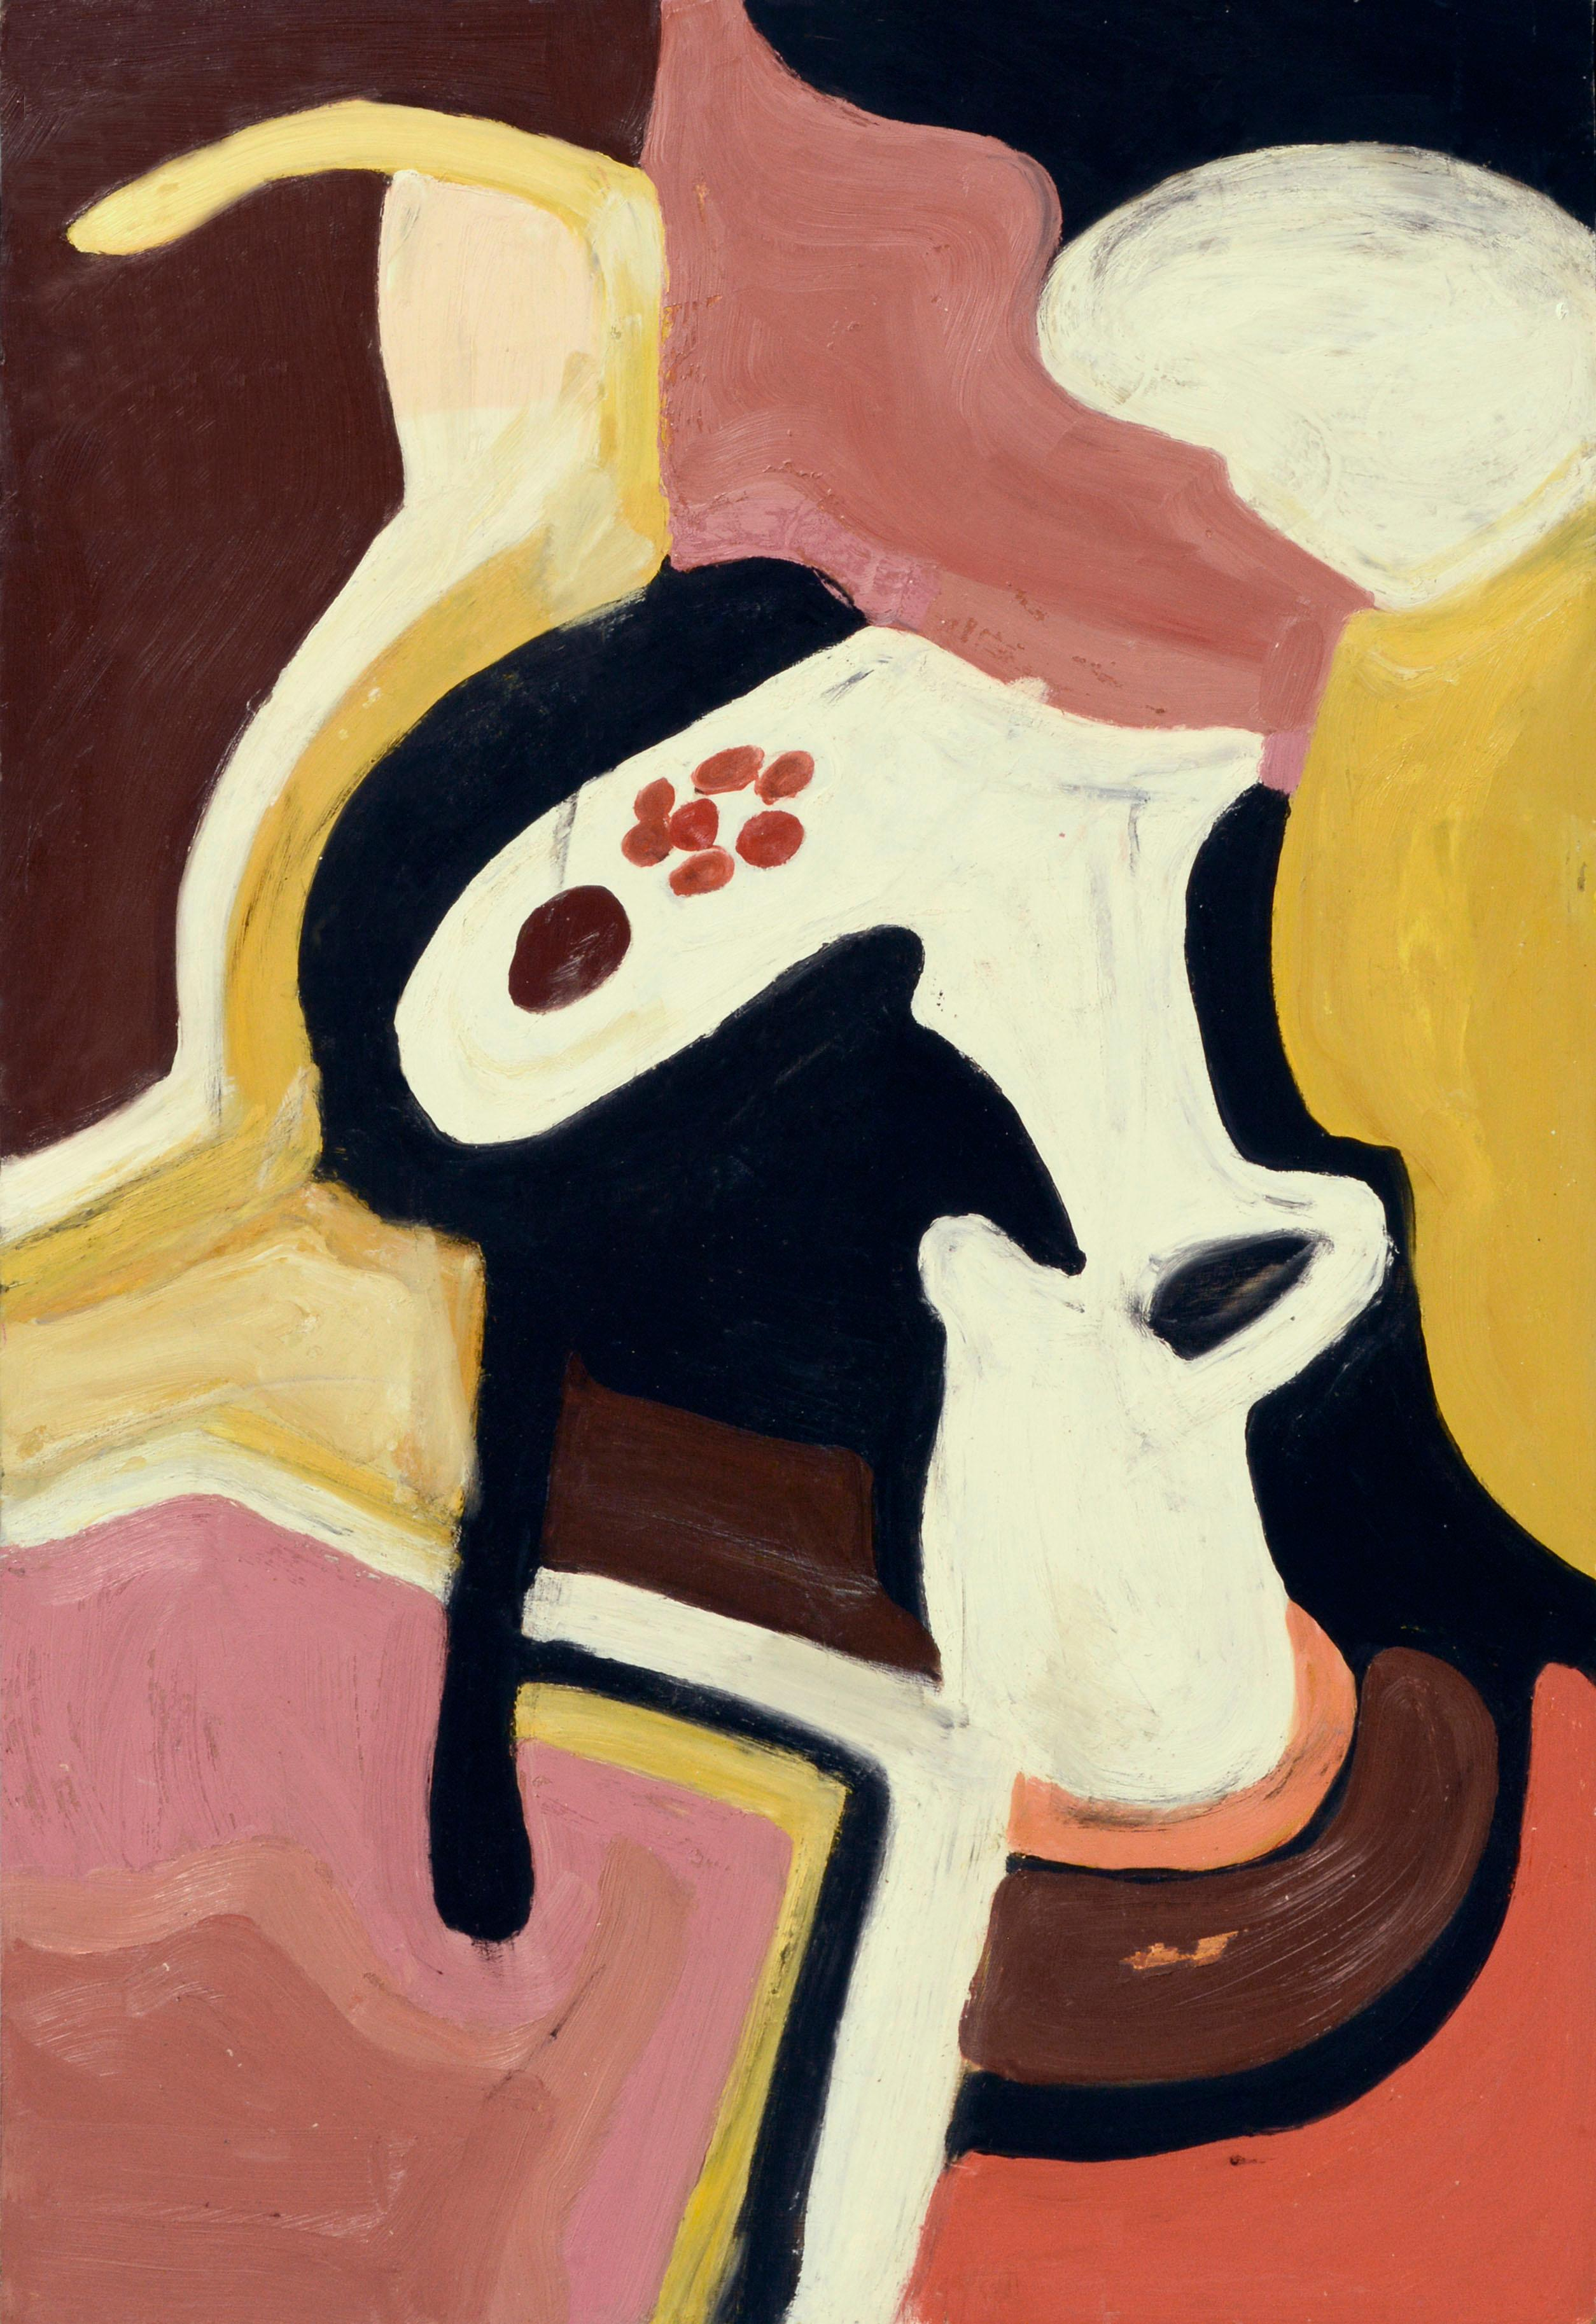 Pink & Yellow Figurative Abstract 1968